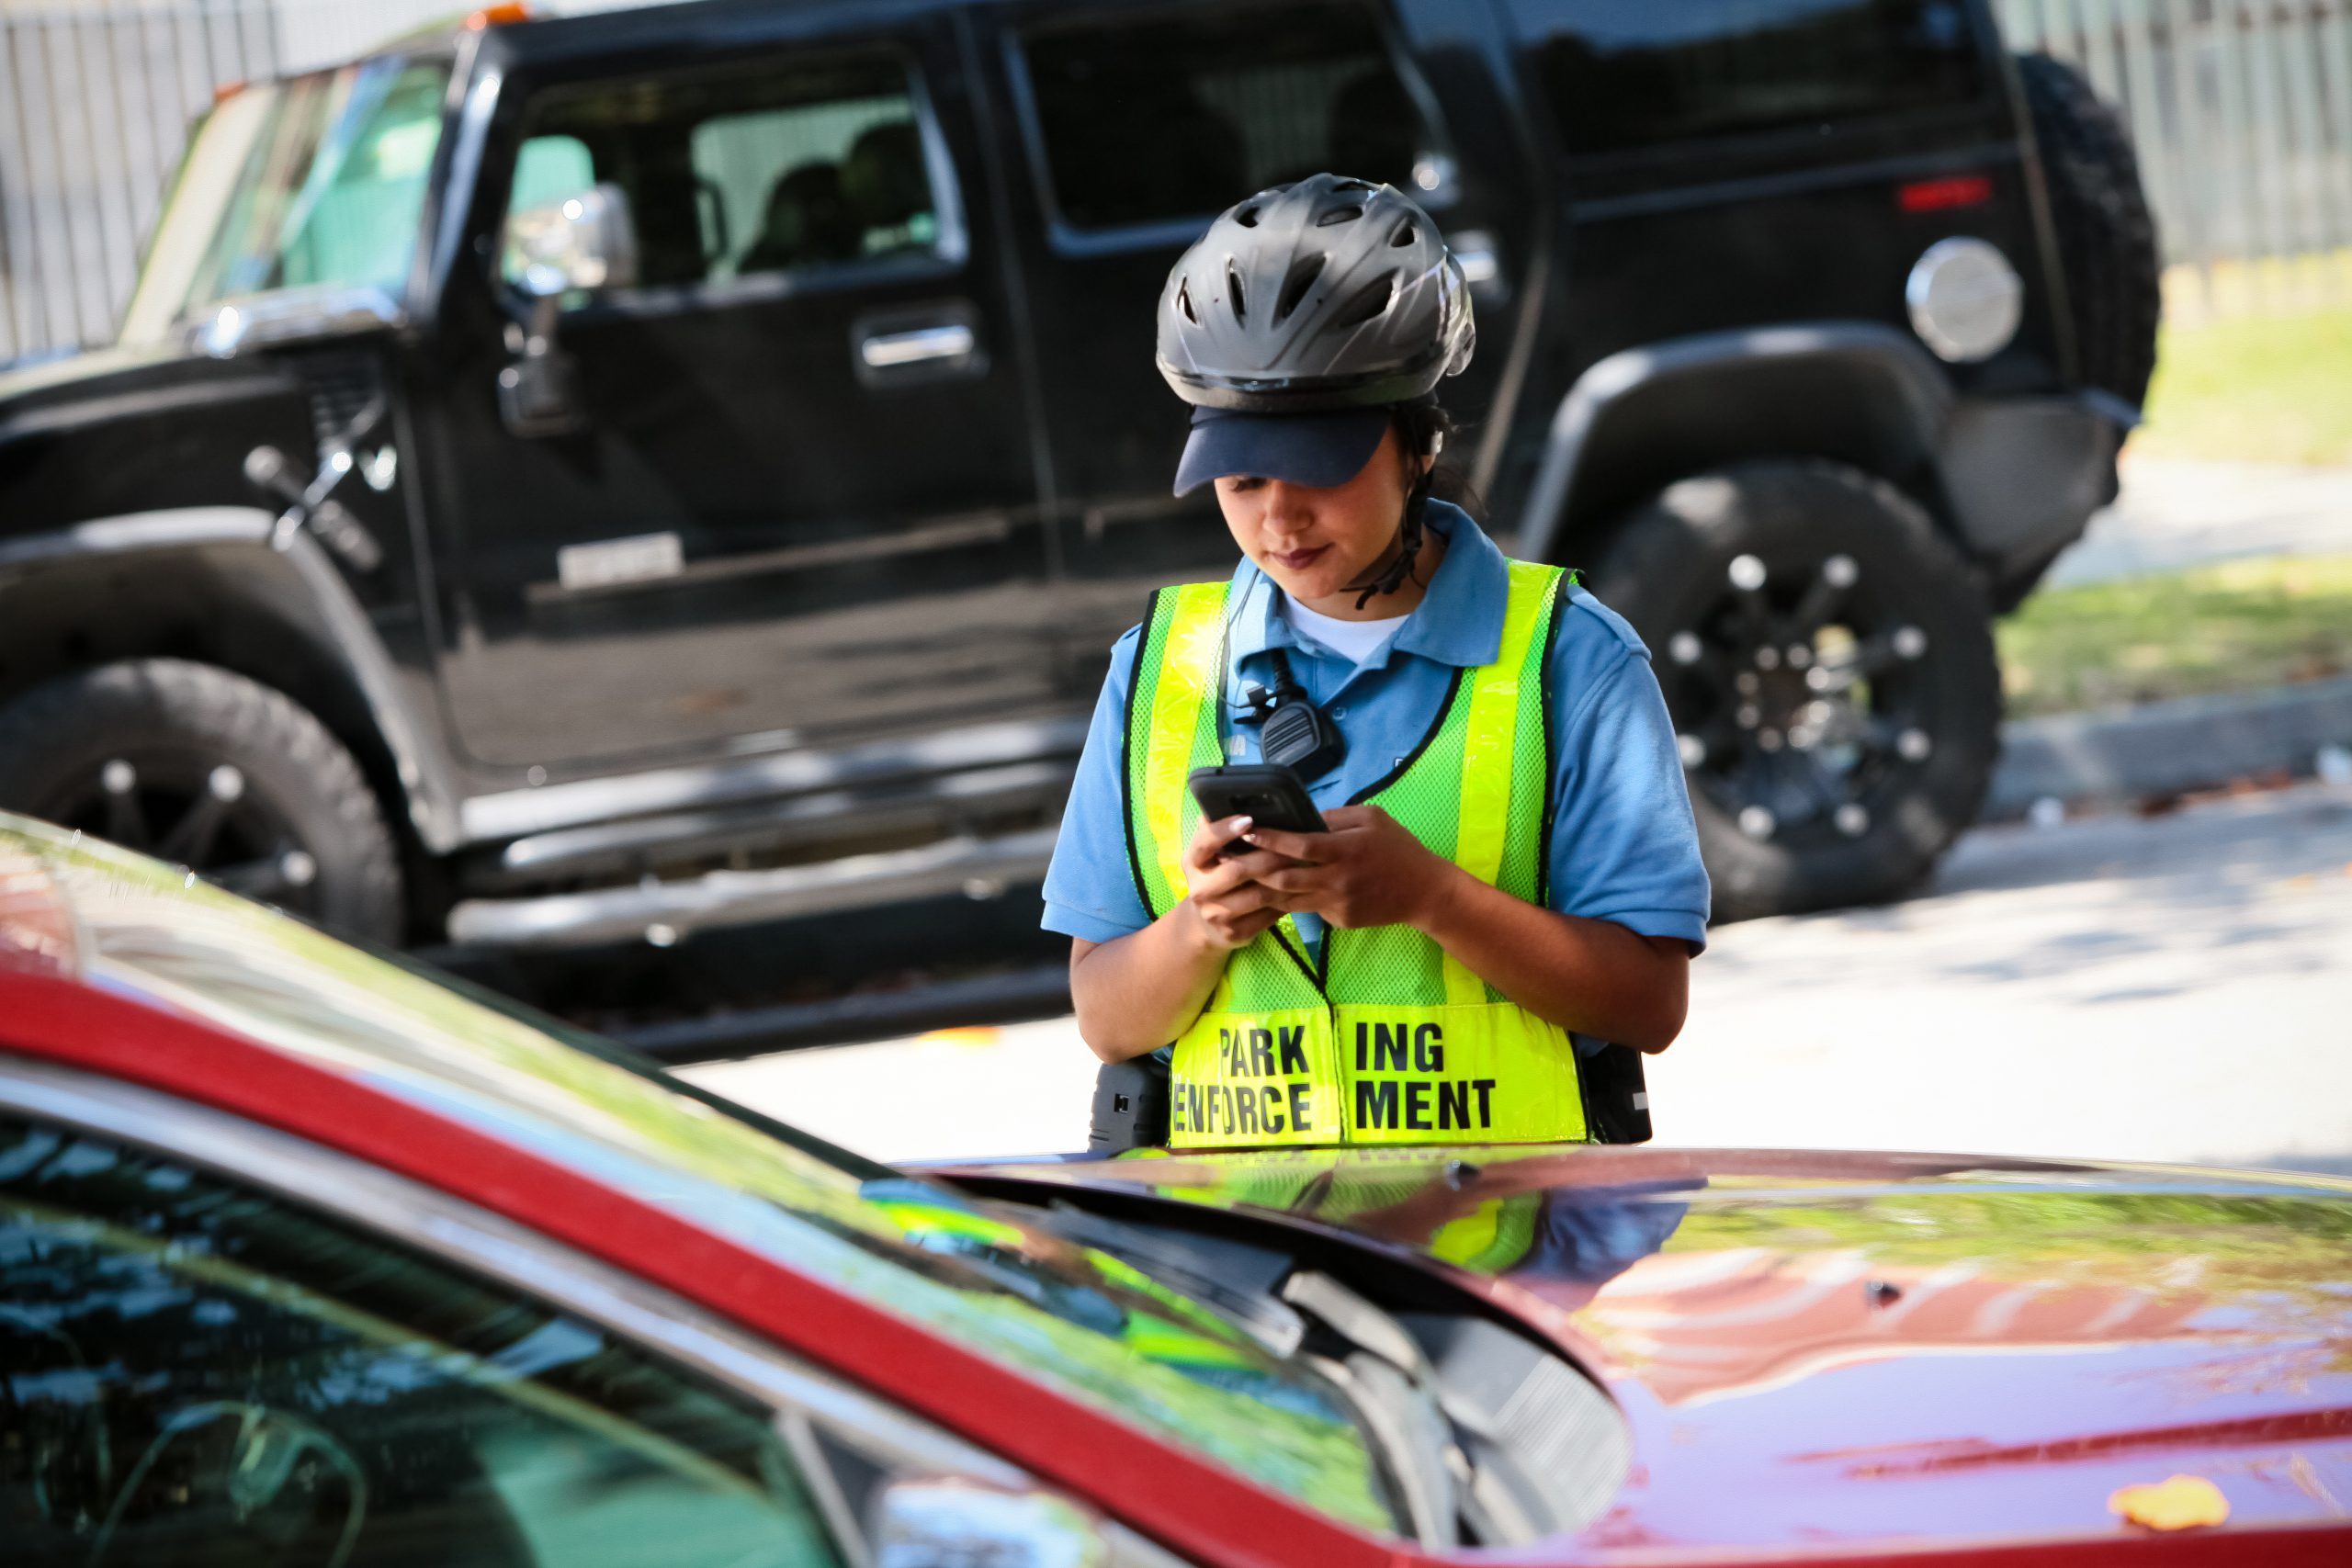 Parking enforcement services - officer looking at phone in front of car